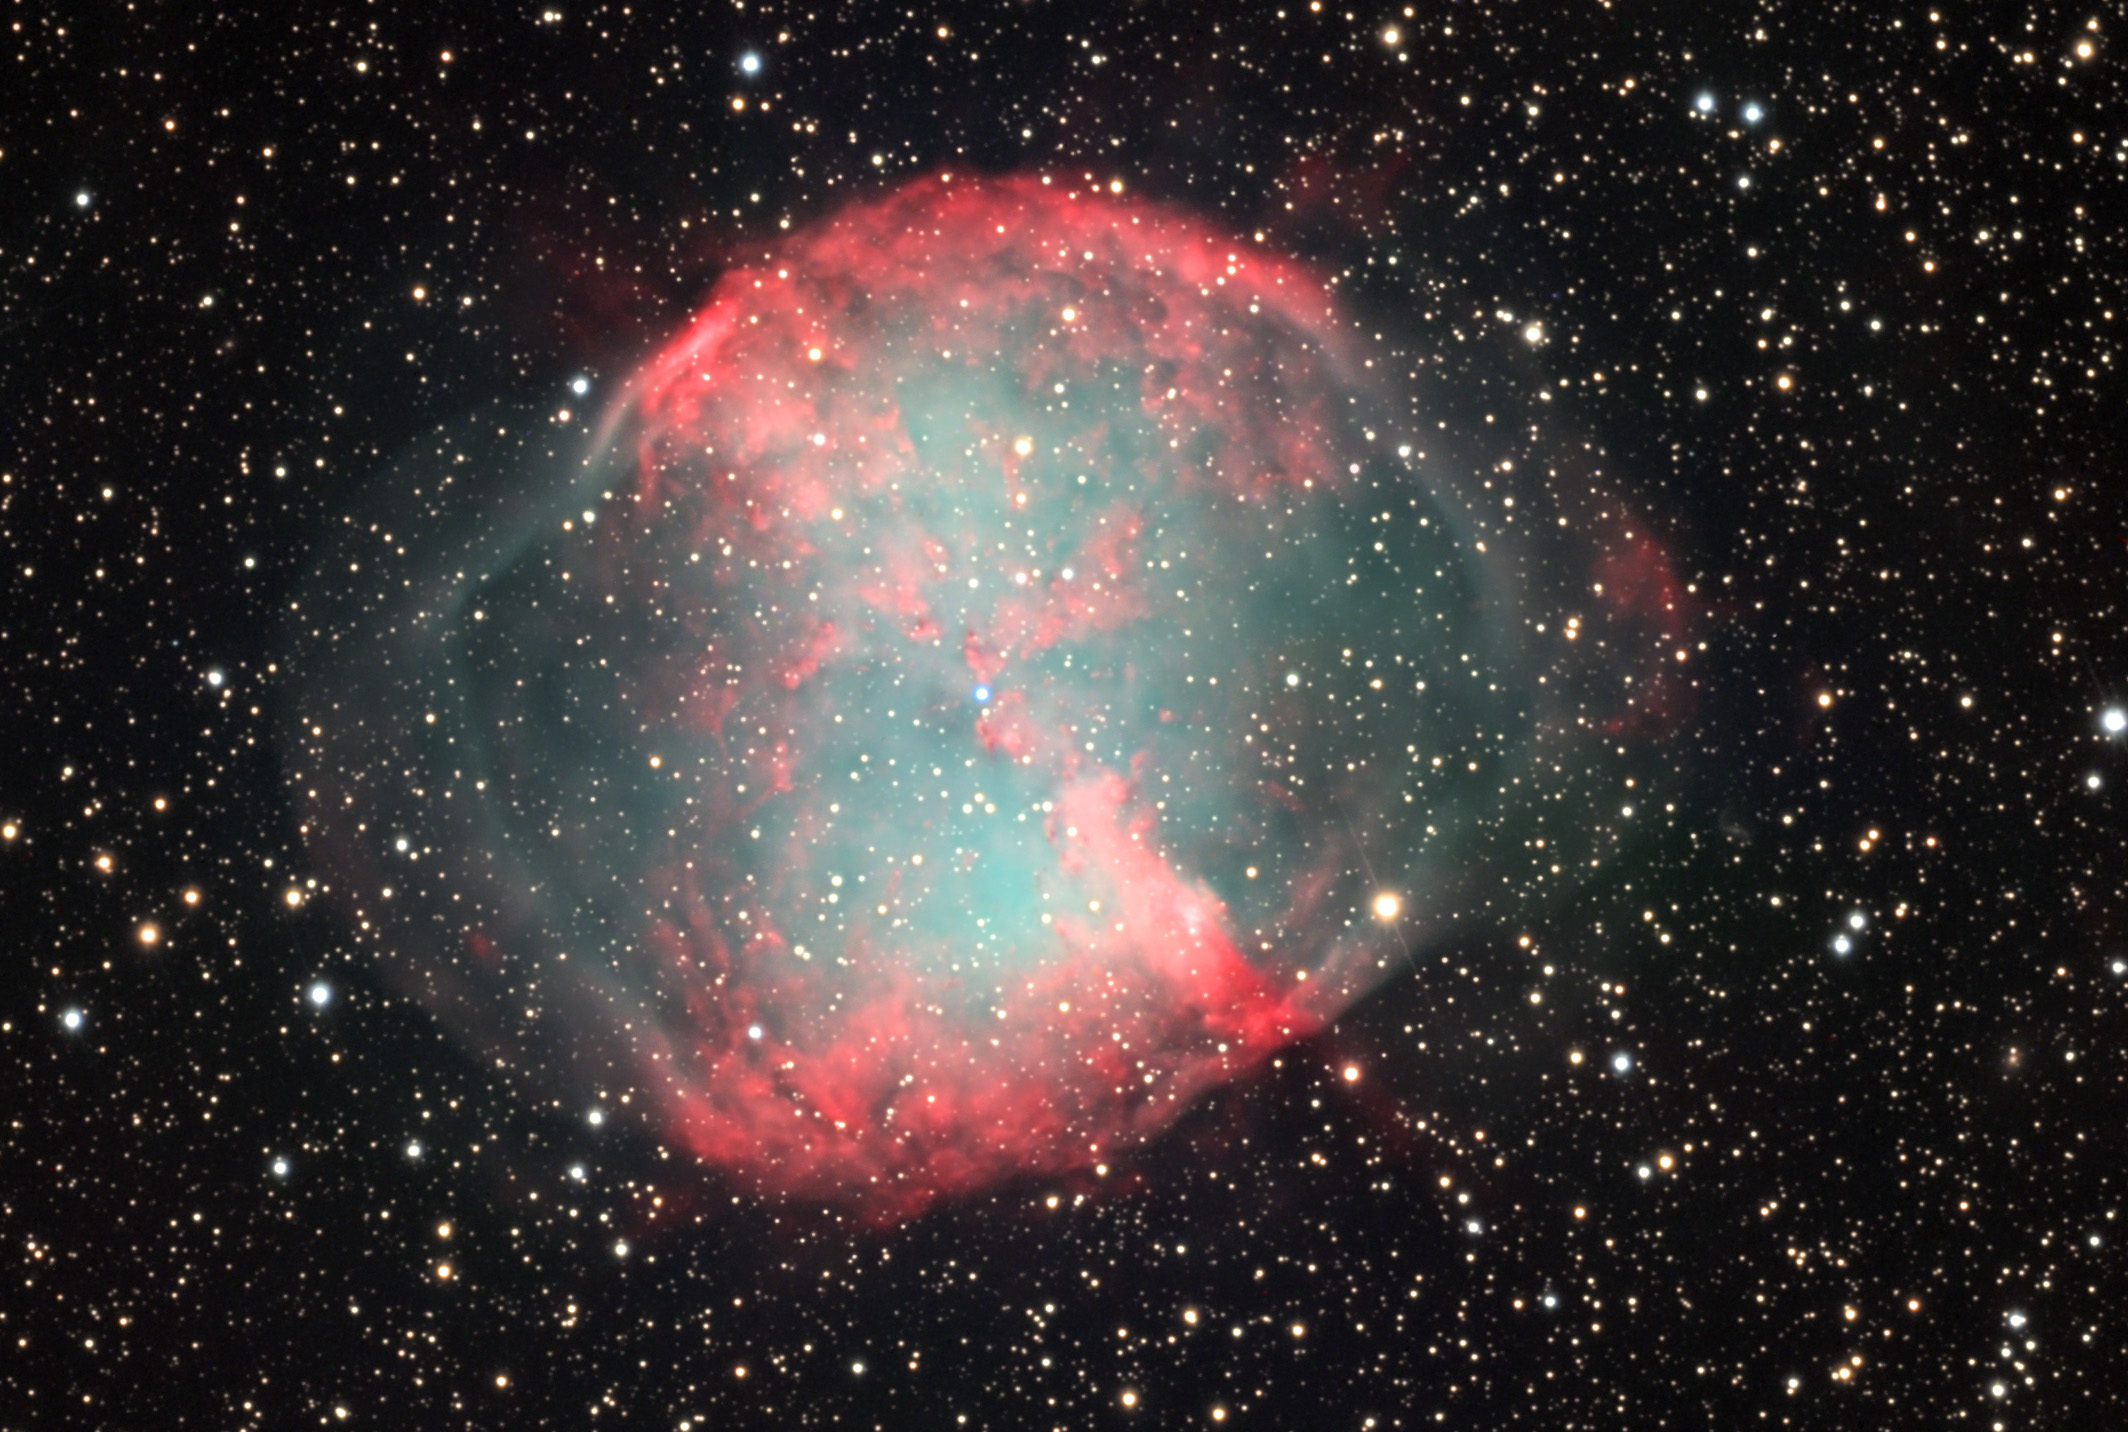 APOD: 2005 June 3 - M27: The Dumbbell Nebula